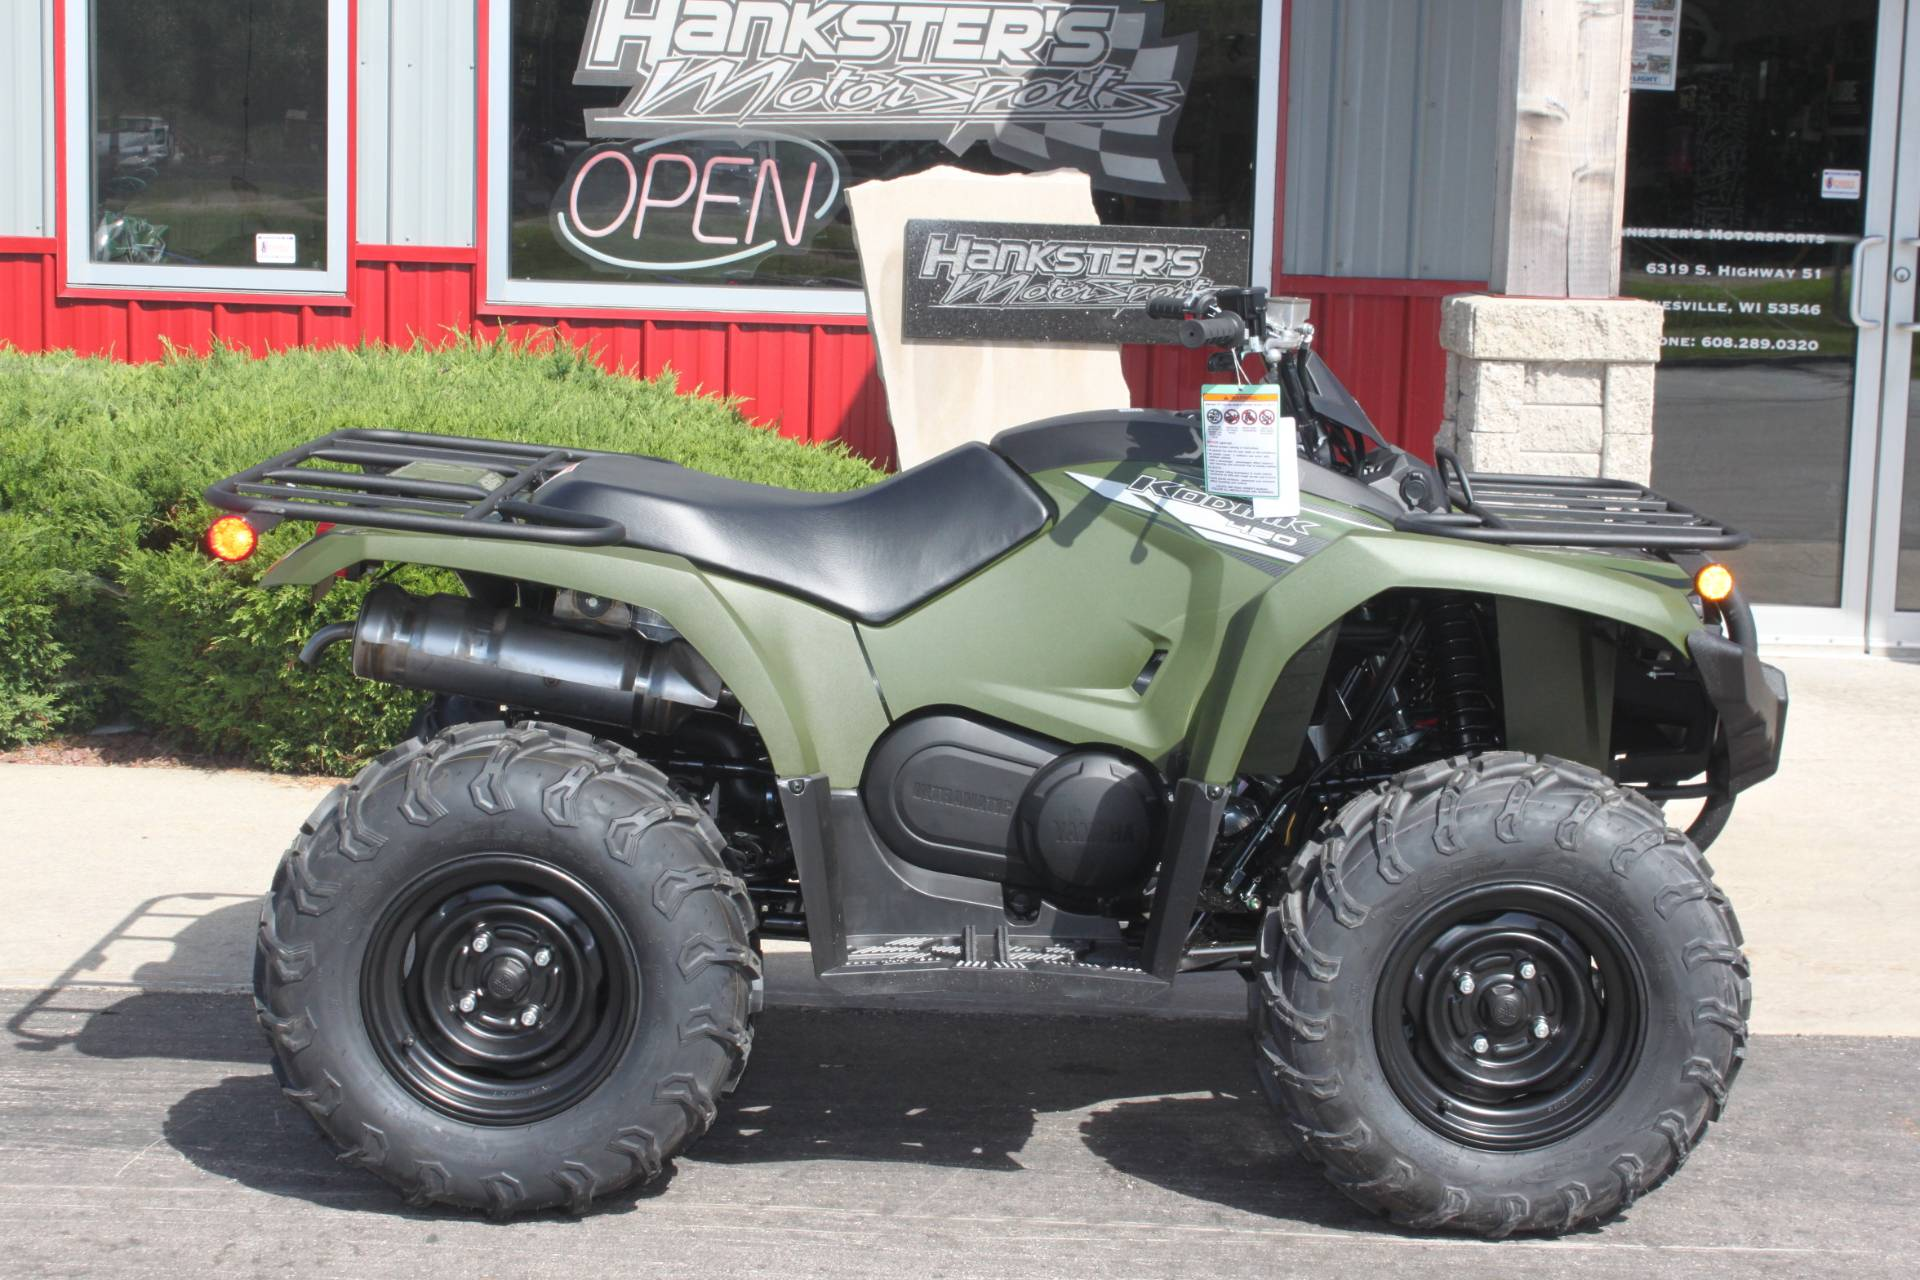 2020 Yamaha Kodiak 450 in Janesville, Wisconsin - Photo 1